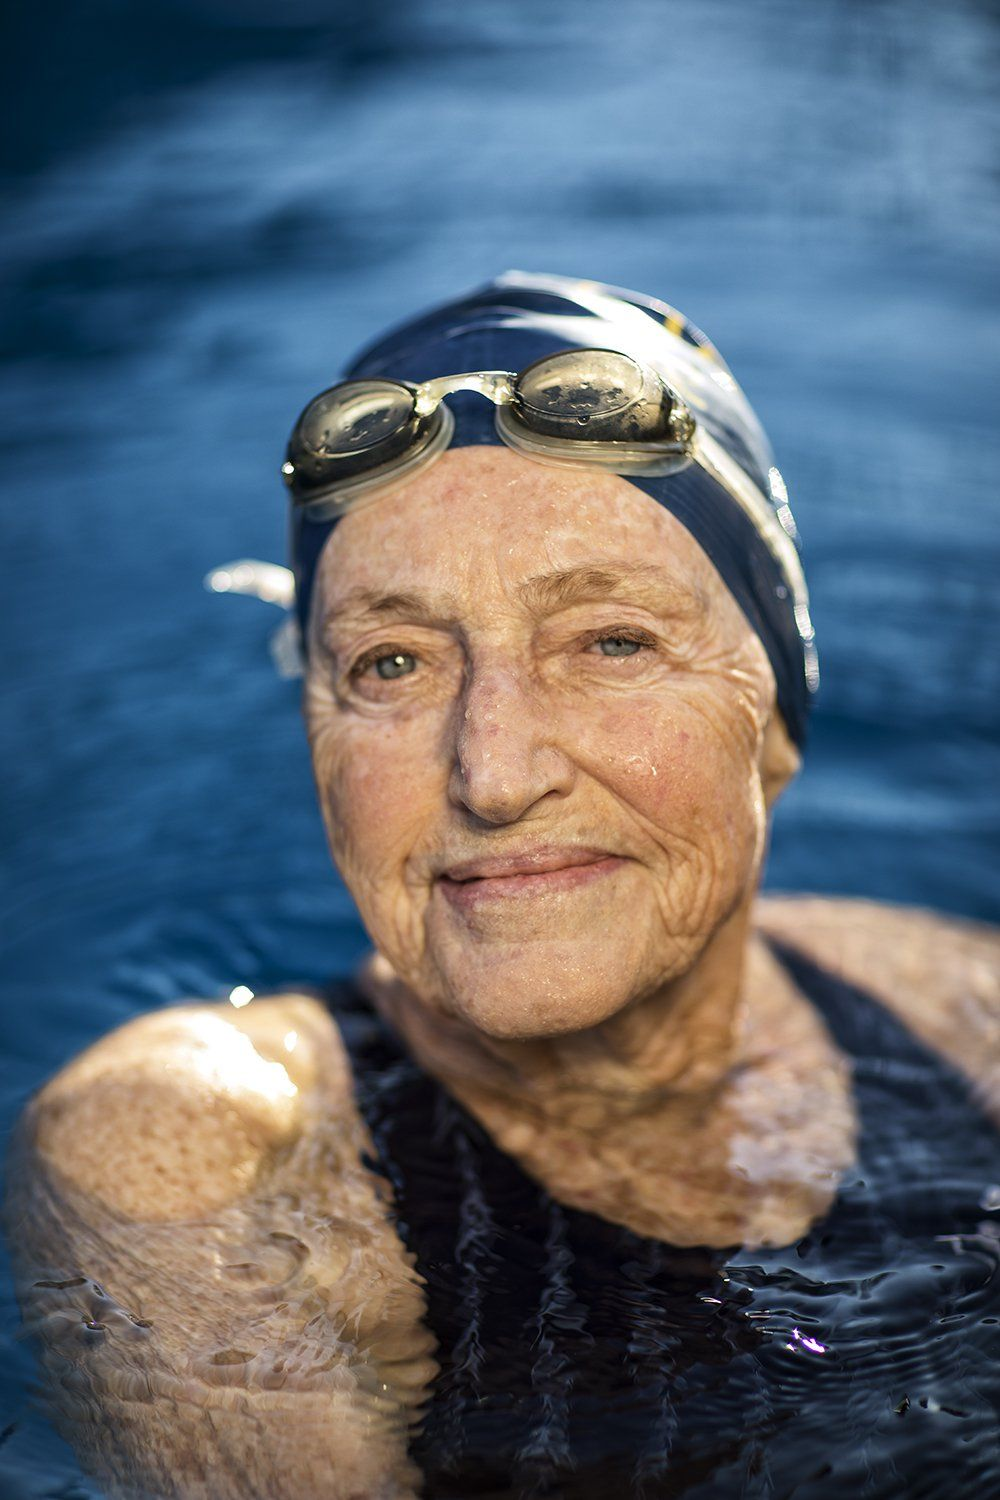 Fit At 80 You Bet. Meet 4 Octogenarian Athletes Who Give You Zero Reason To Skip The Gym